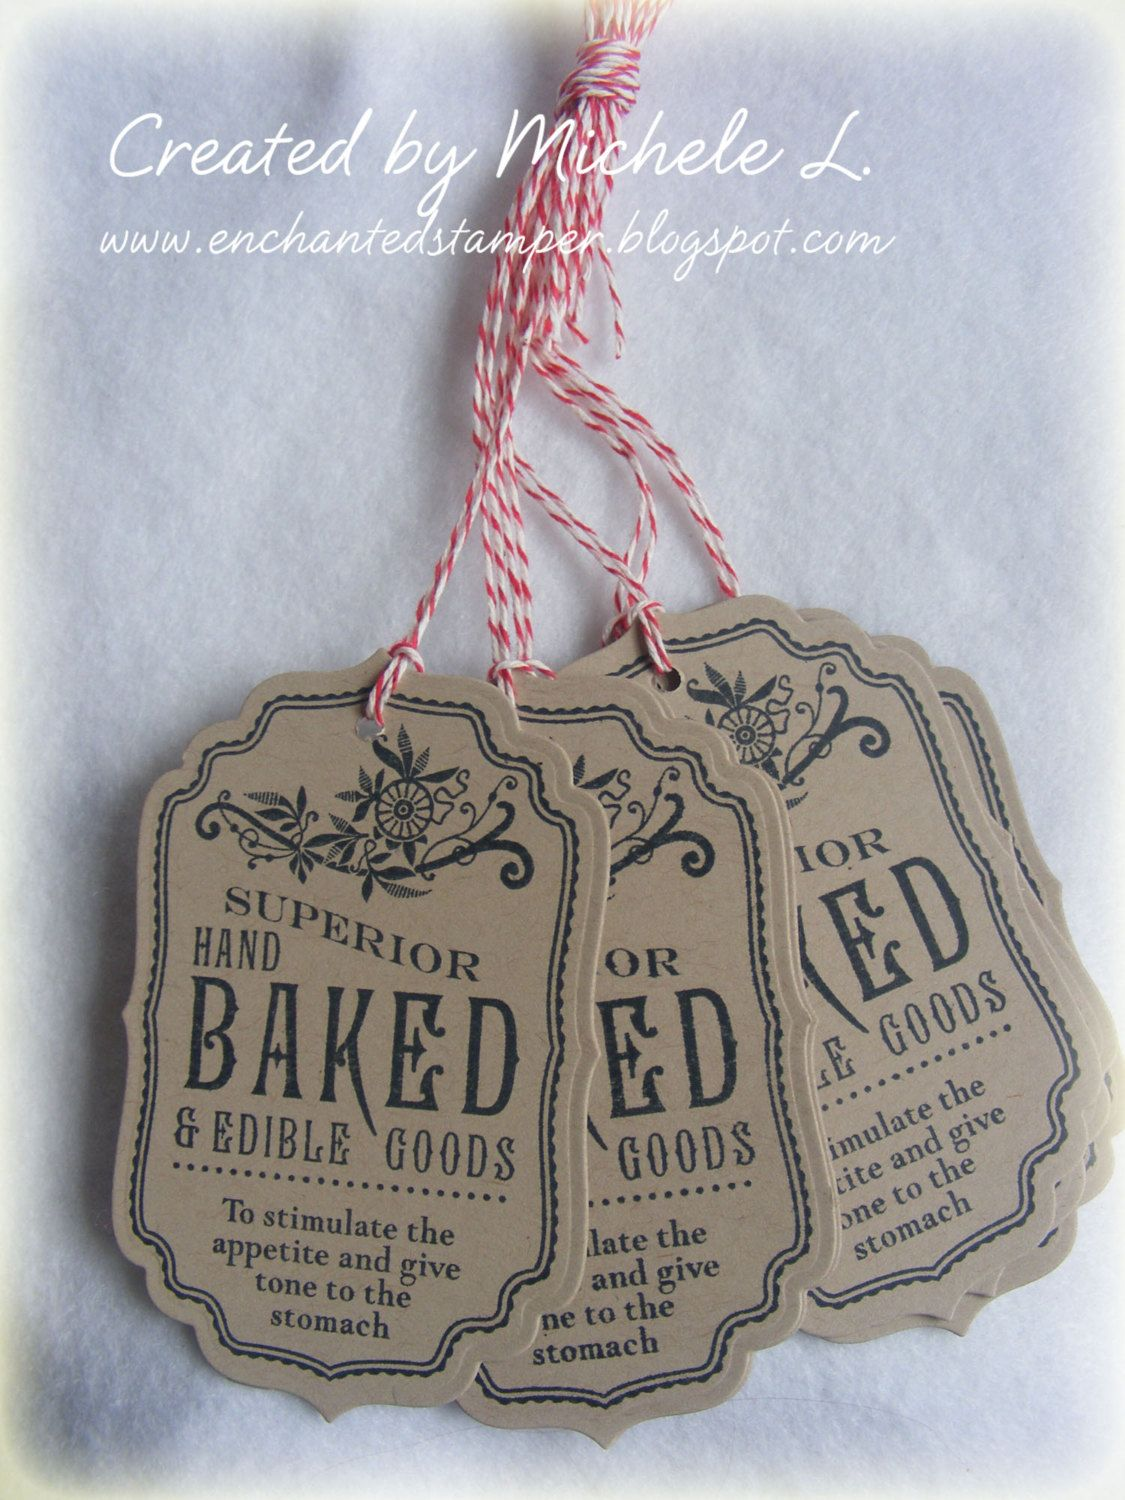 Tags - hand baked & edible goods